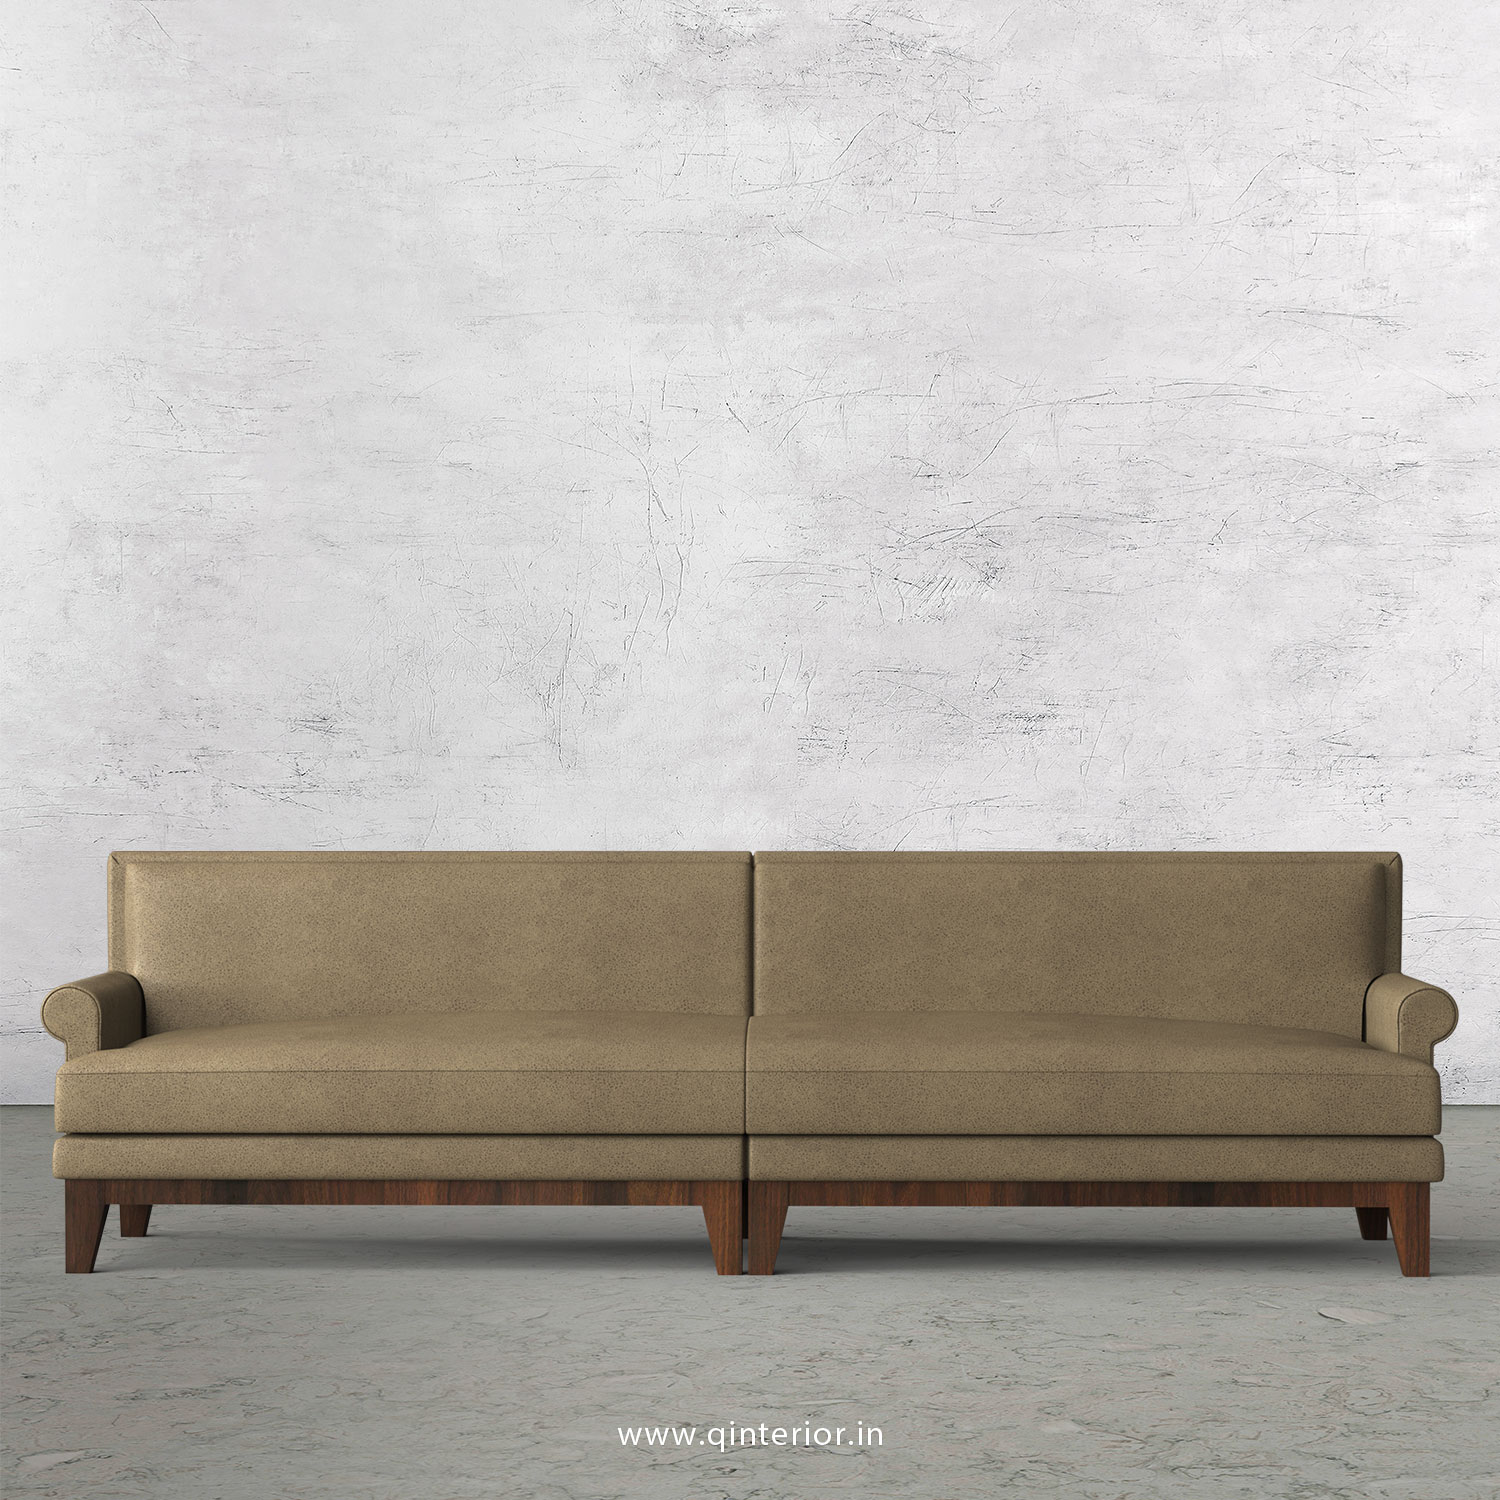 Aviana 4 Seater Sofa in Fab Leather Fabric - SFA001 FL06